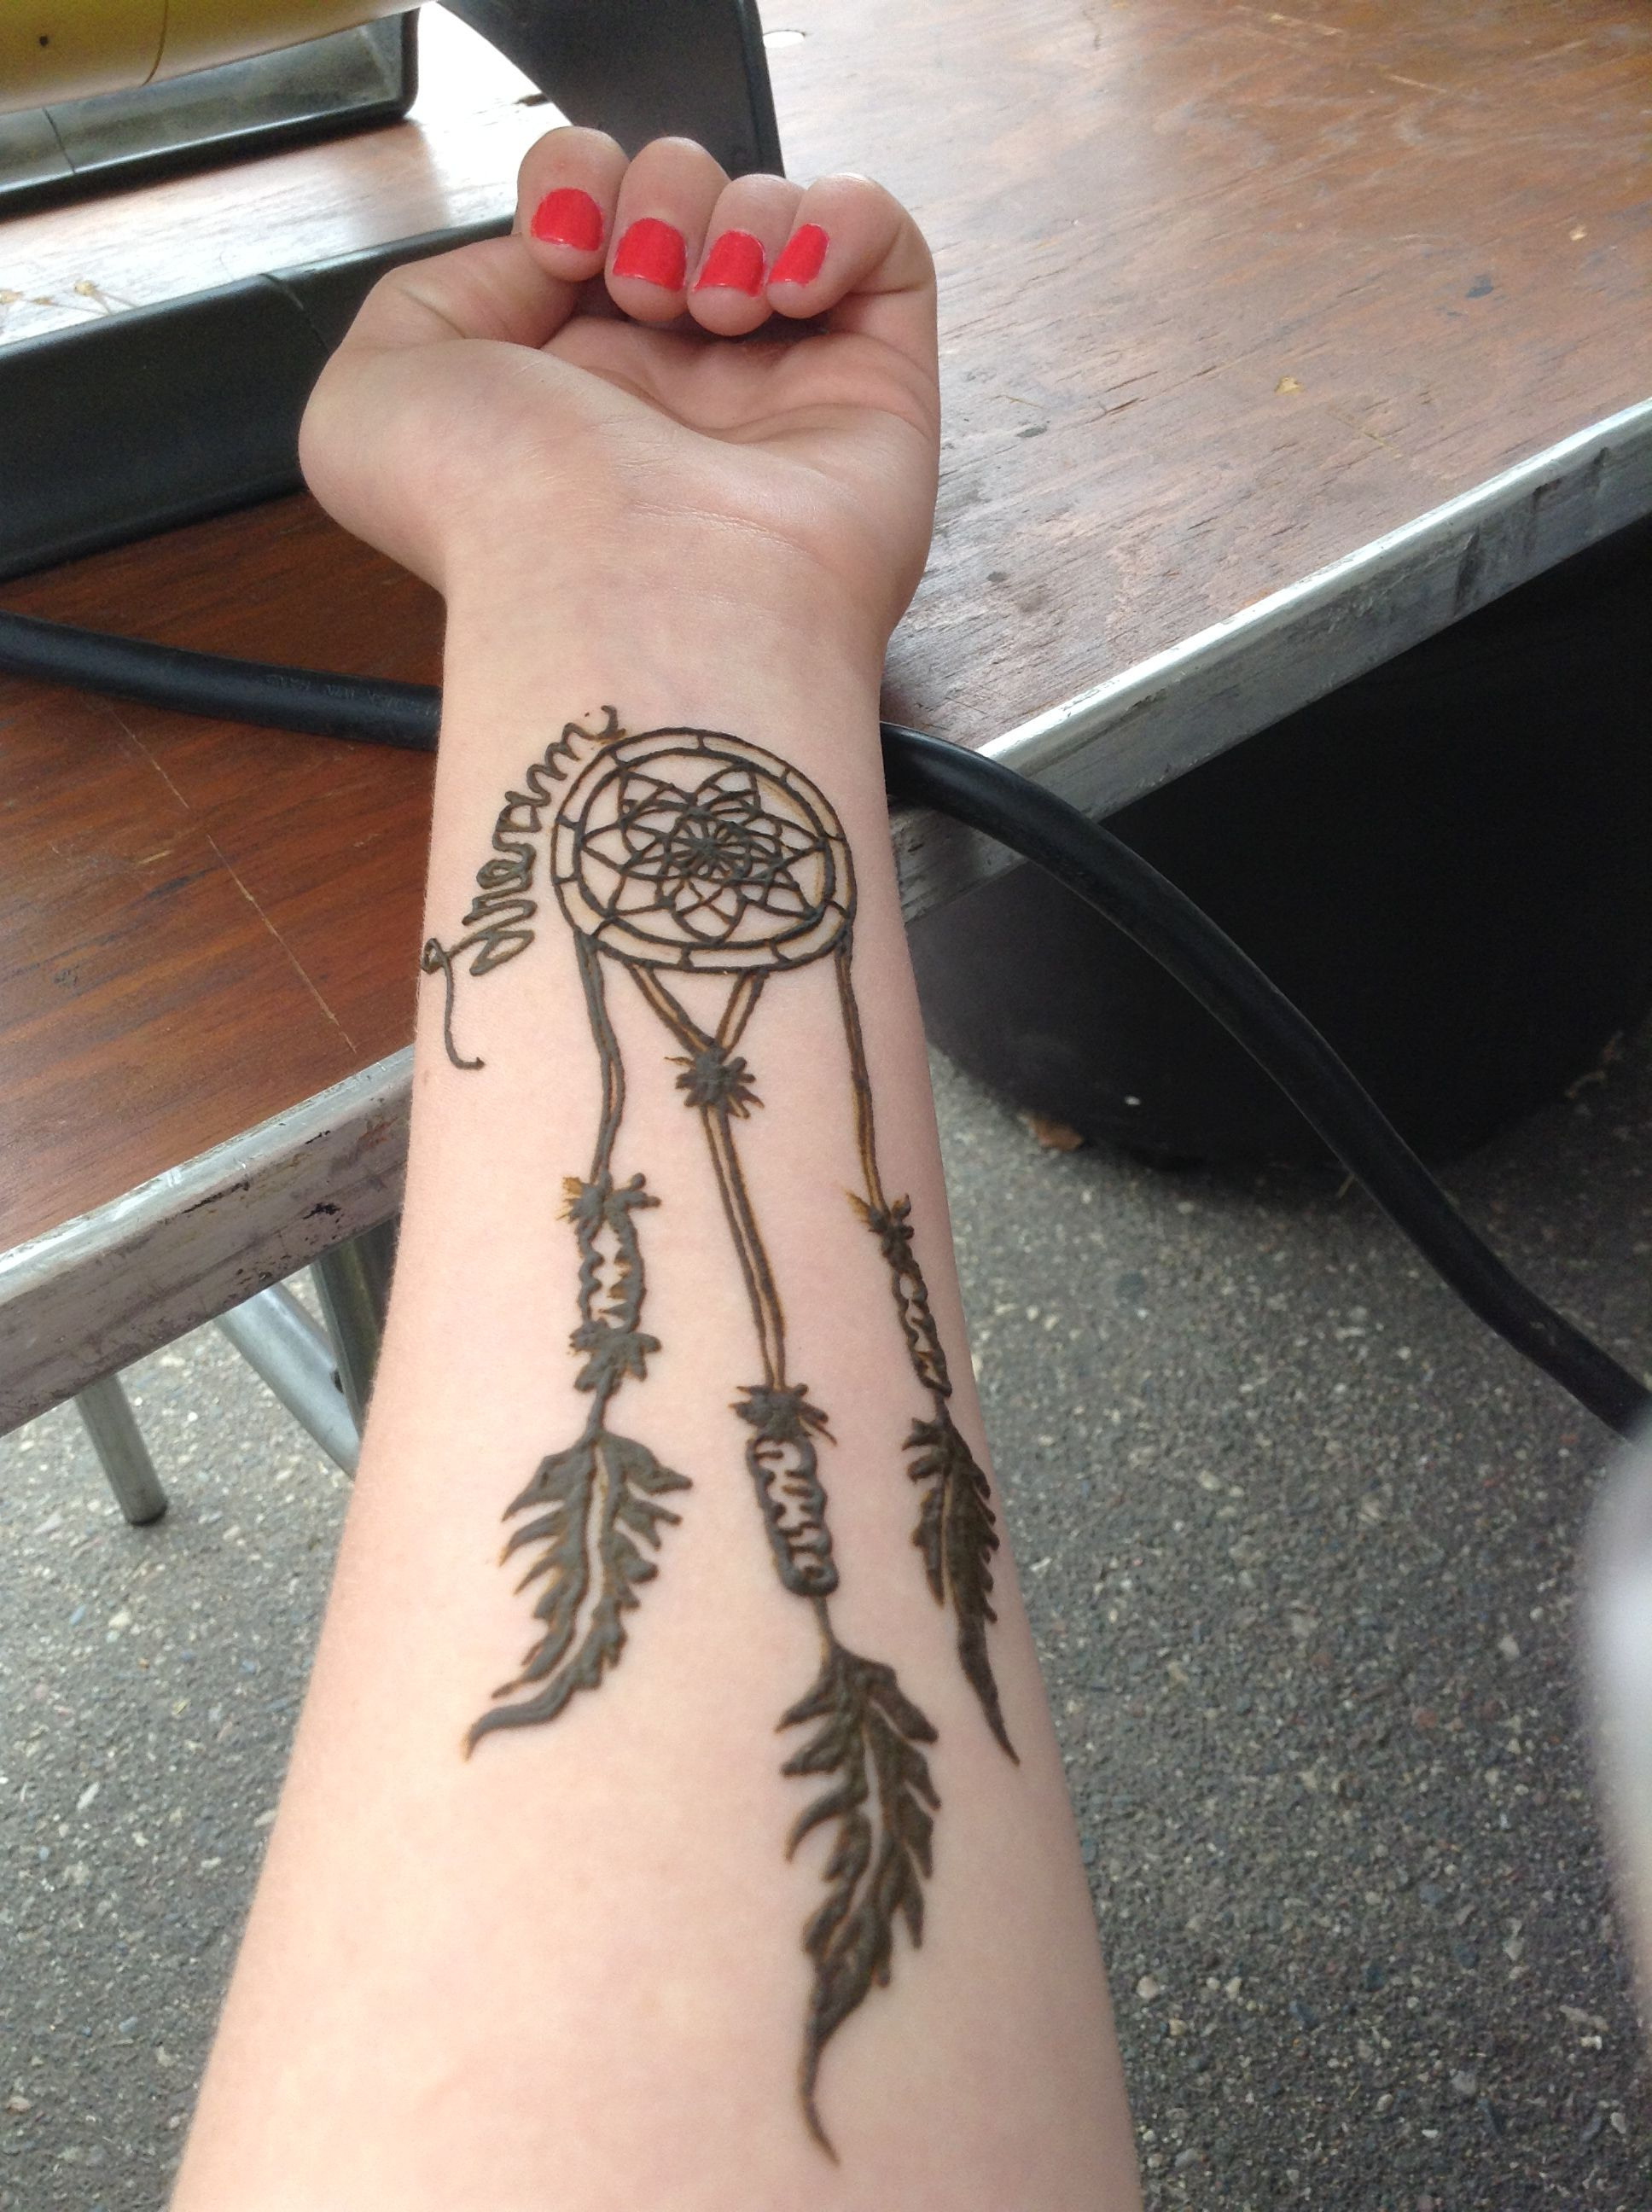 Cute Henna Designs: Cute Henna Design!